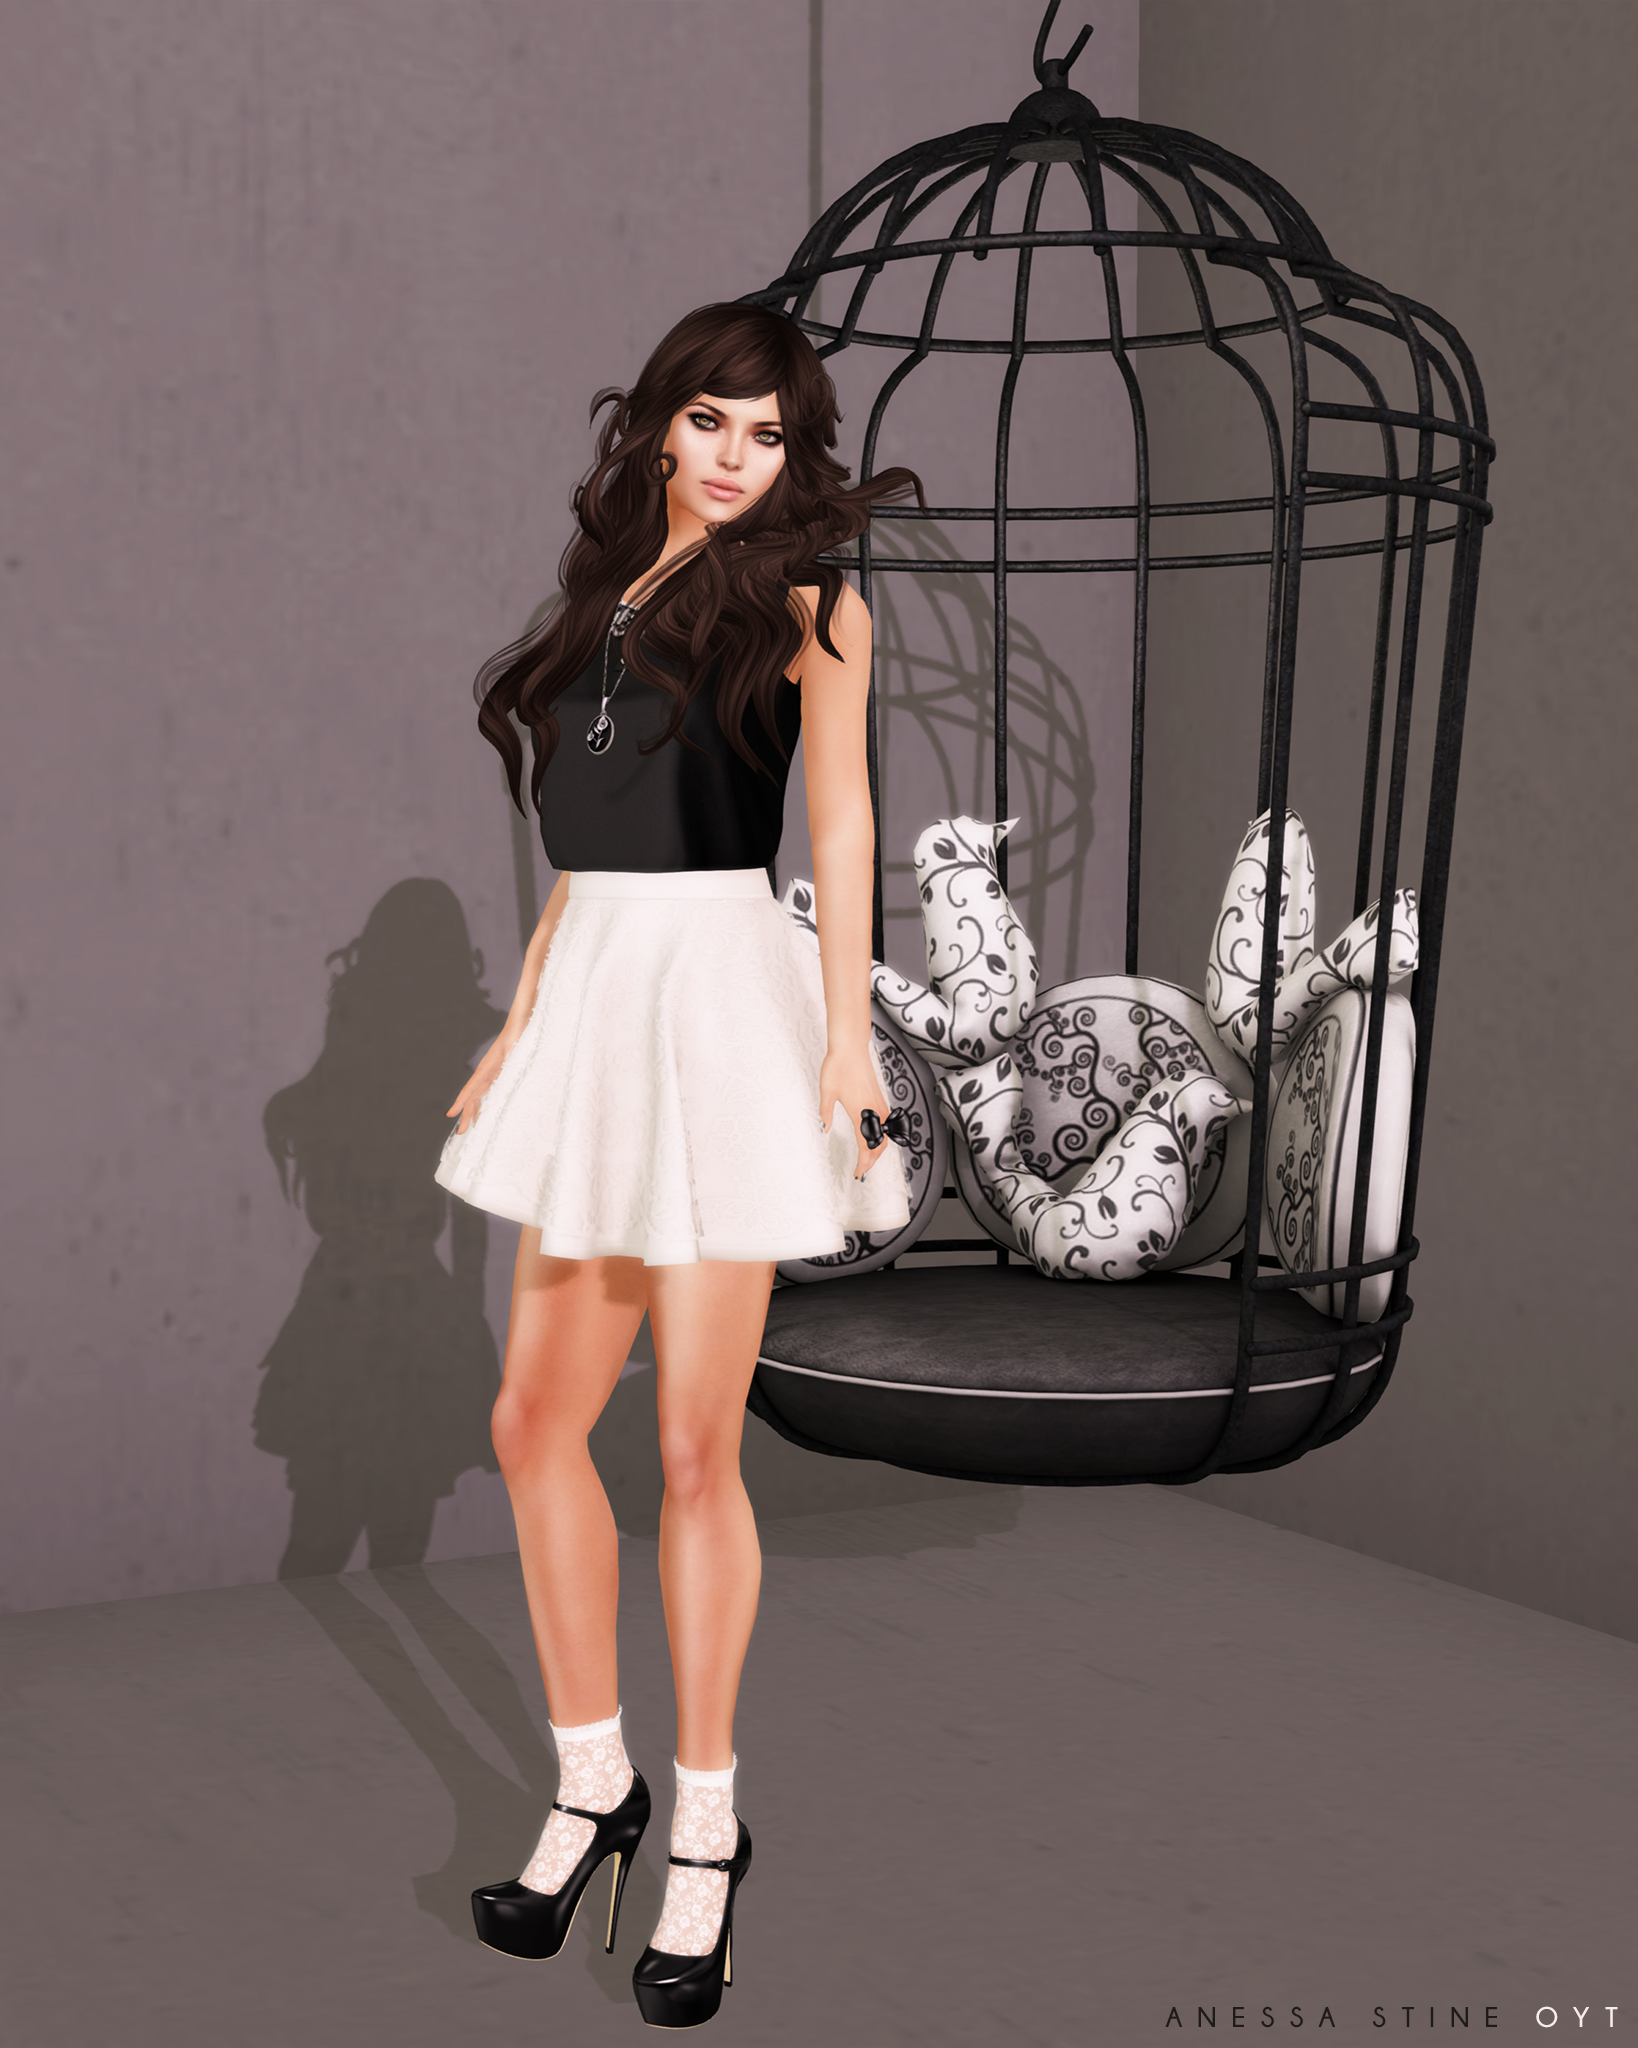 On Your Toes Blog: Caged Bird